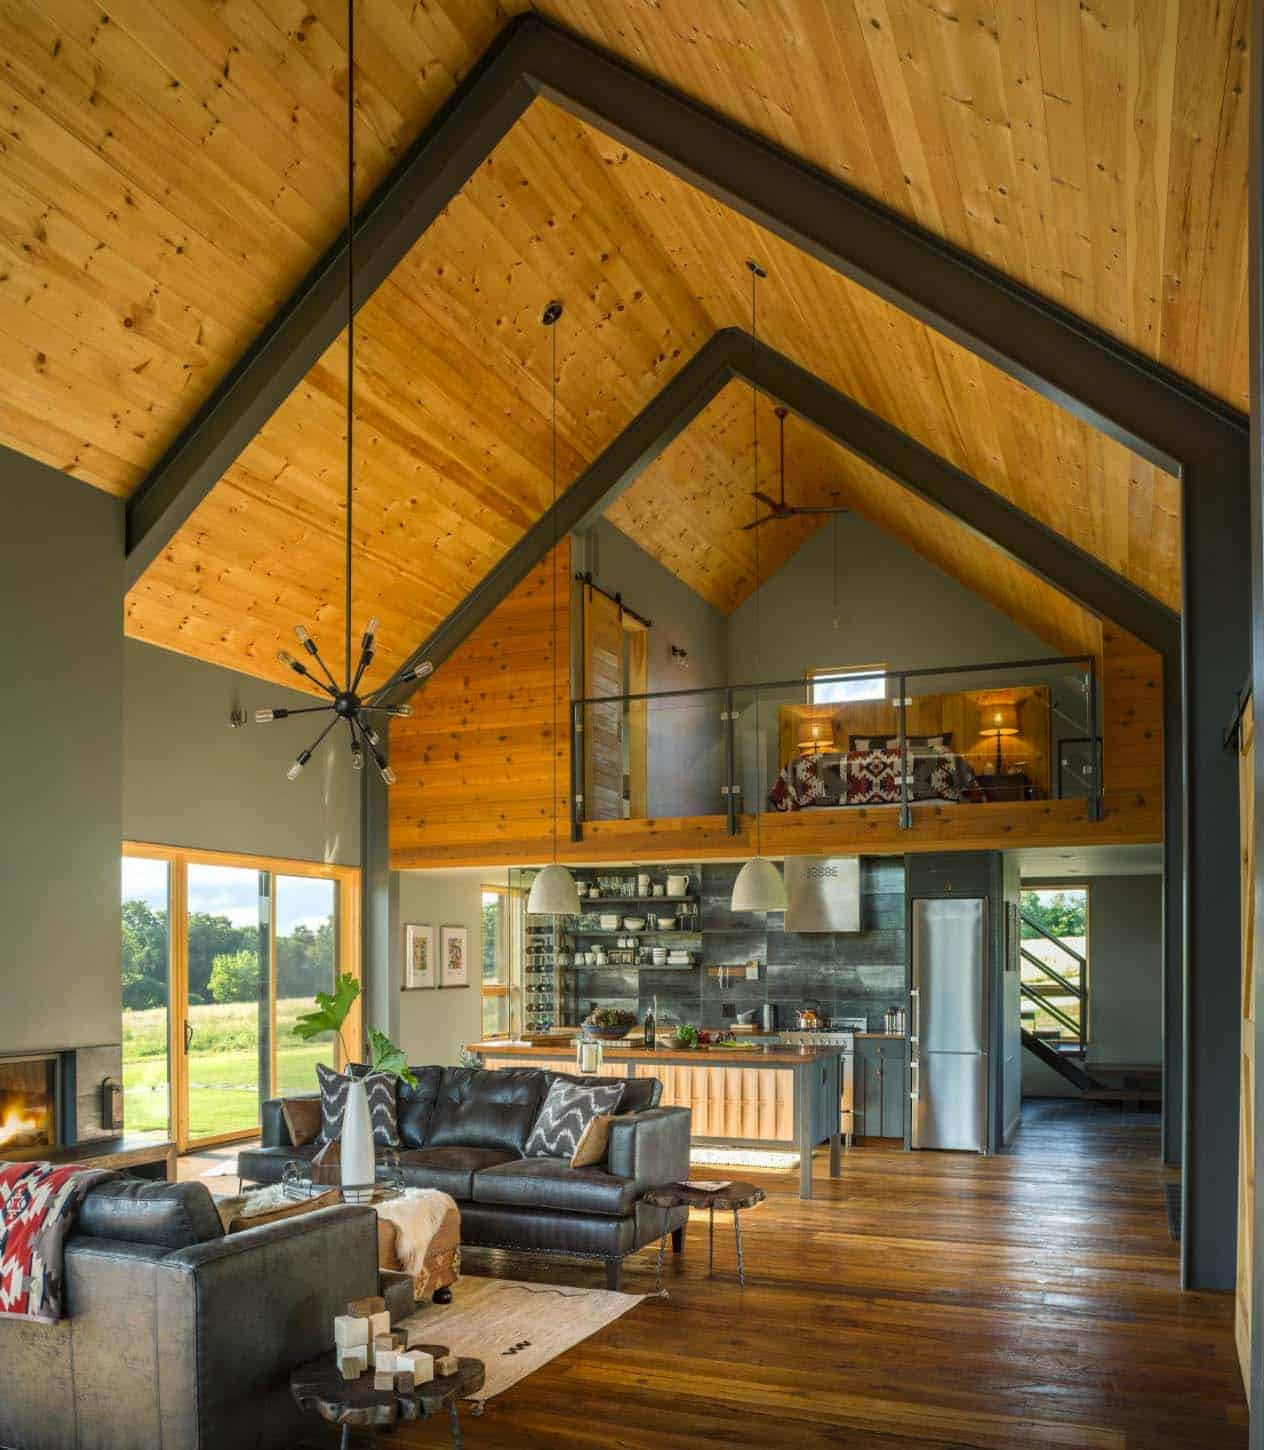 Small and cozy modern barn house getaway